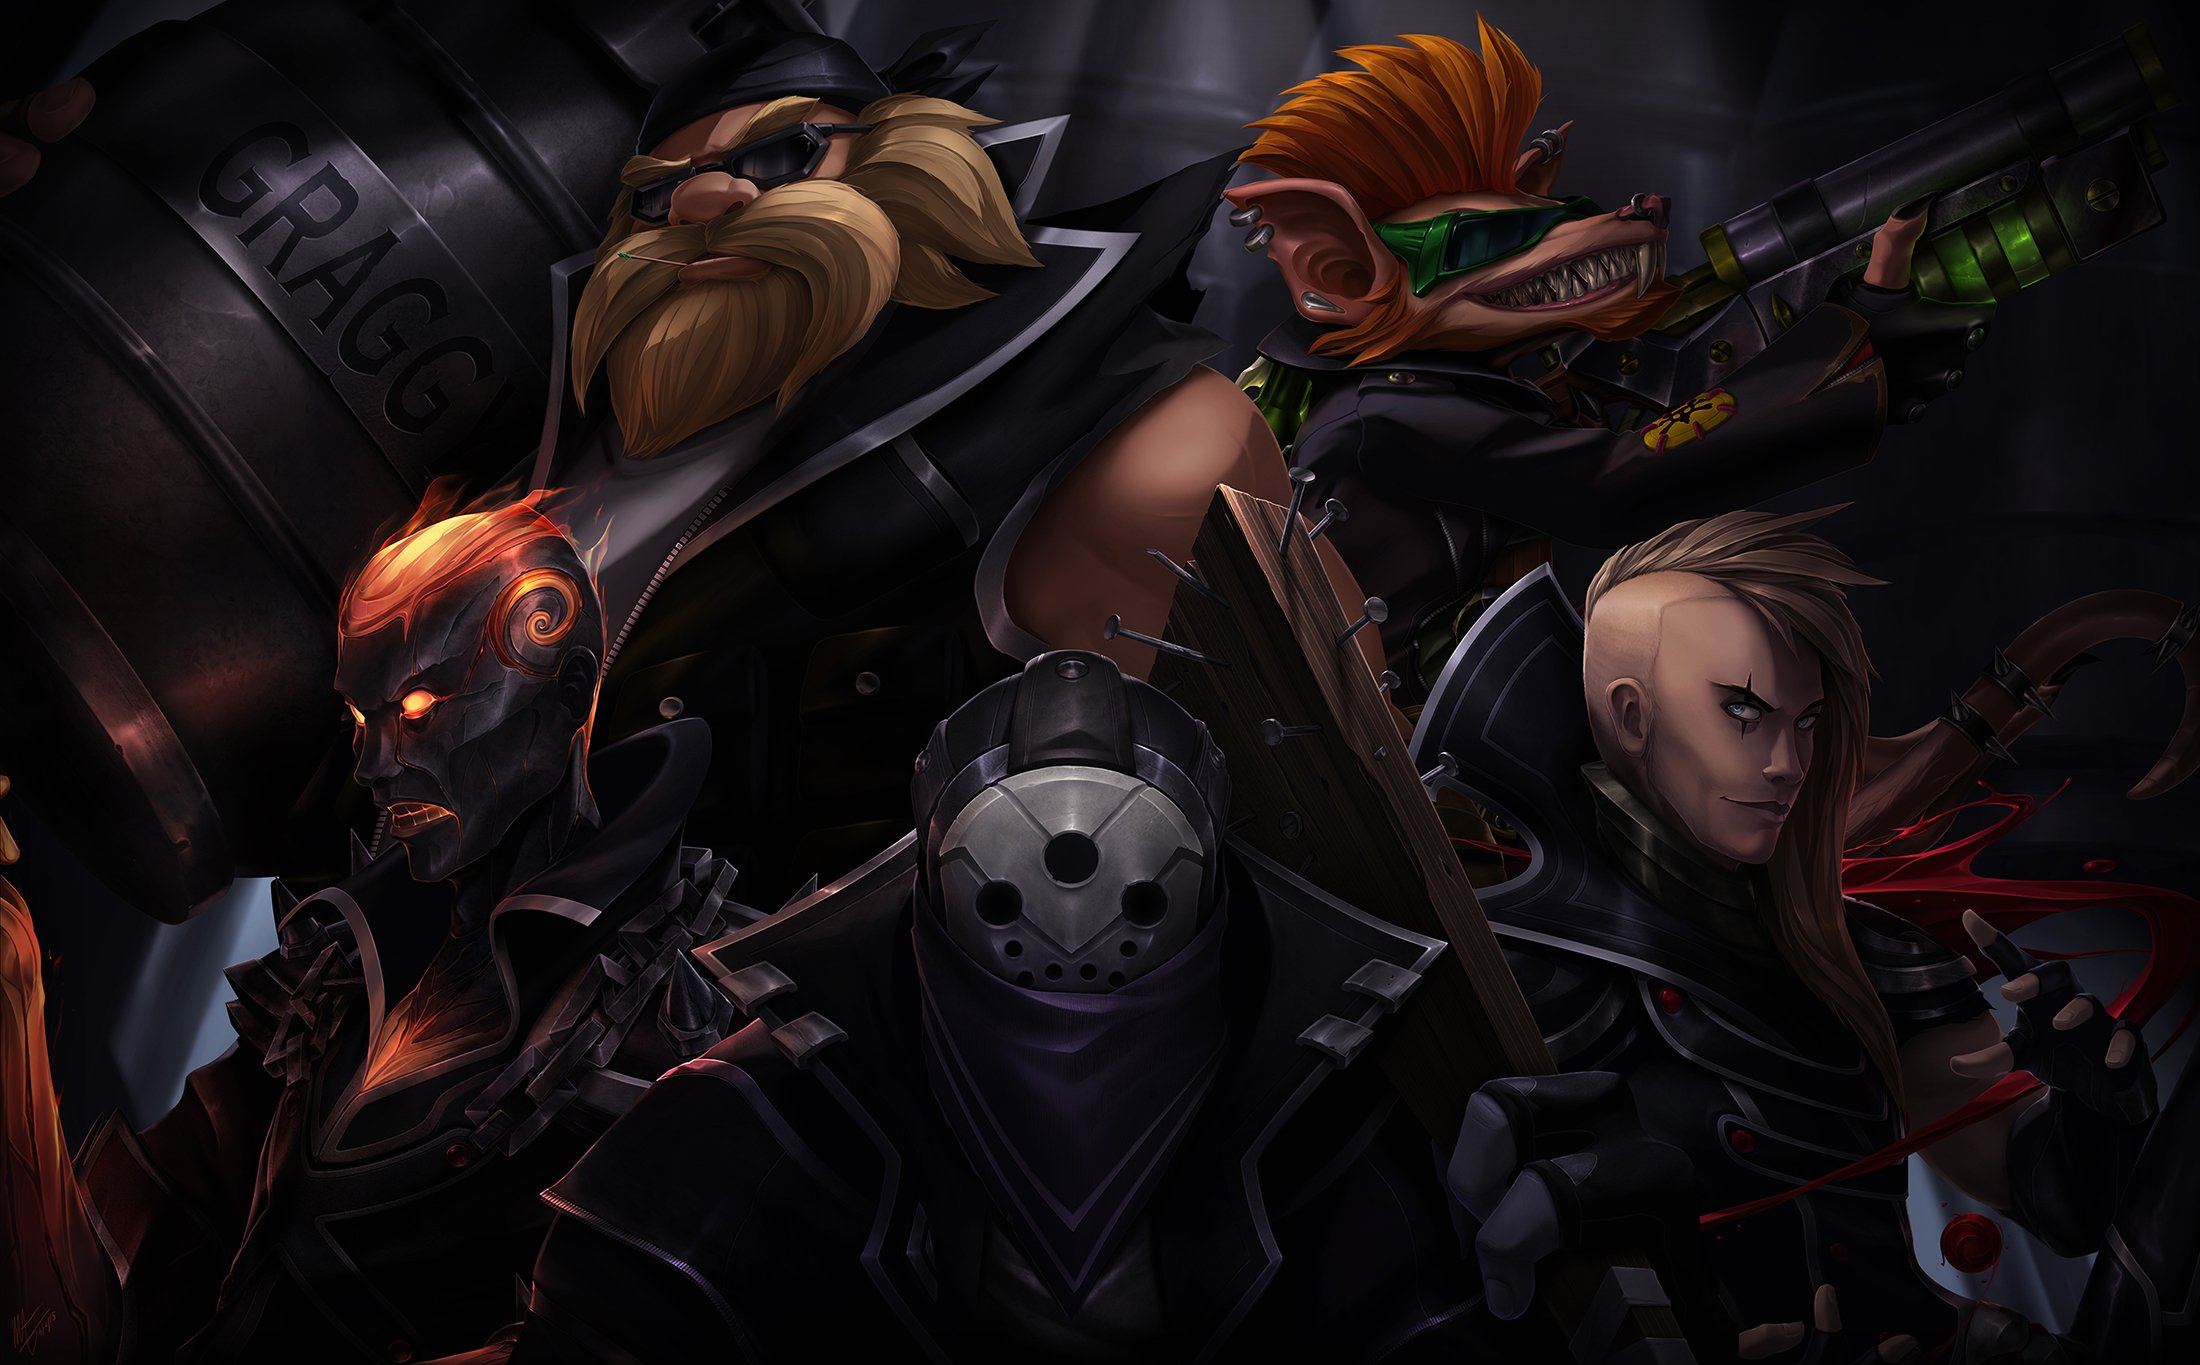 15 Gragas League Of Legends HD Wallpapers Background Images 2200x1365